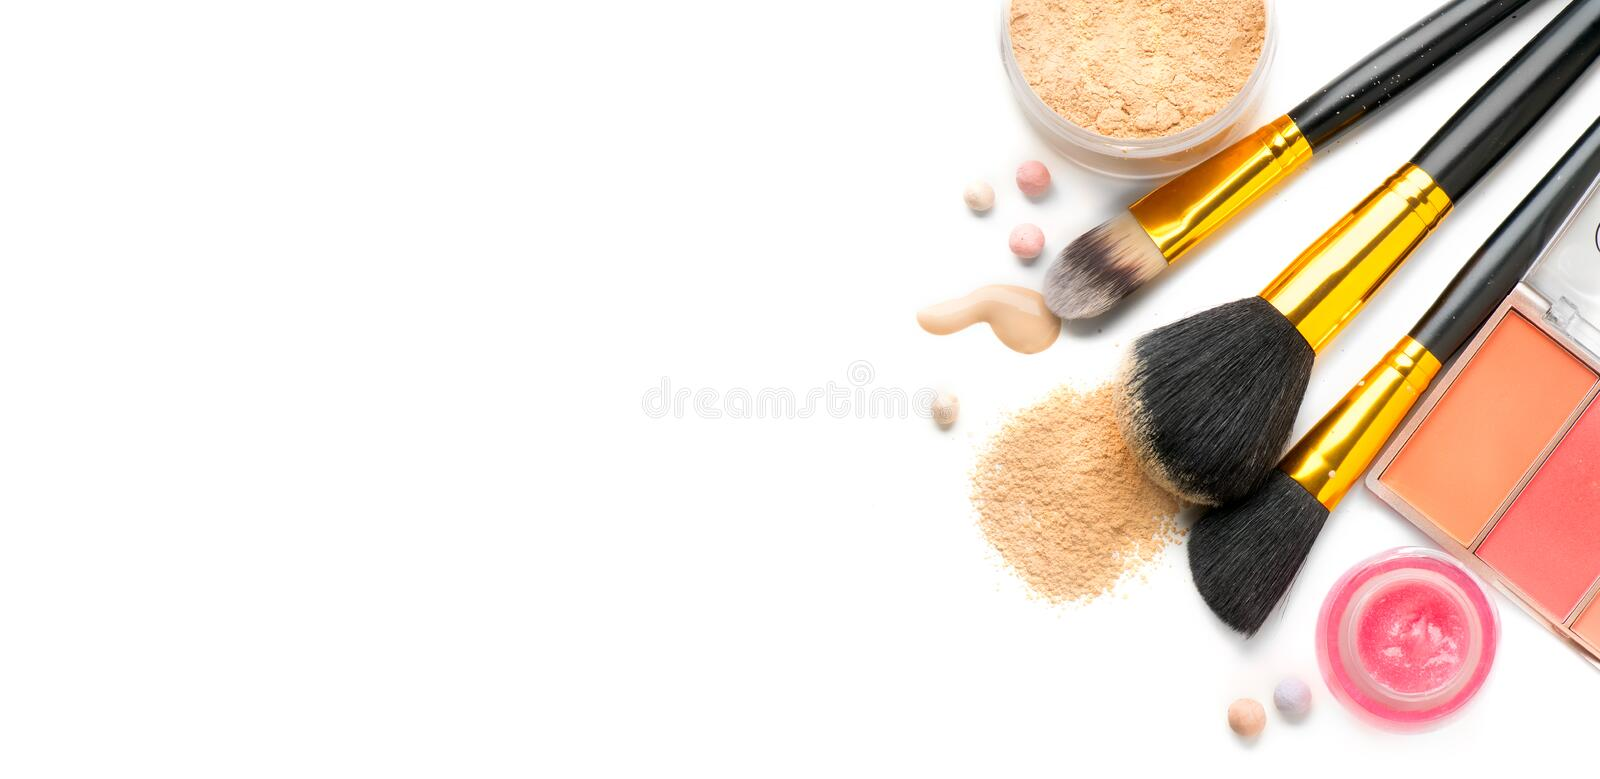 Make-up. Face contouring make up, contour. Highlight, shade, blend. Makeup Products, make up artist tools. Foundation, concealer royalty free stock photography